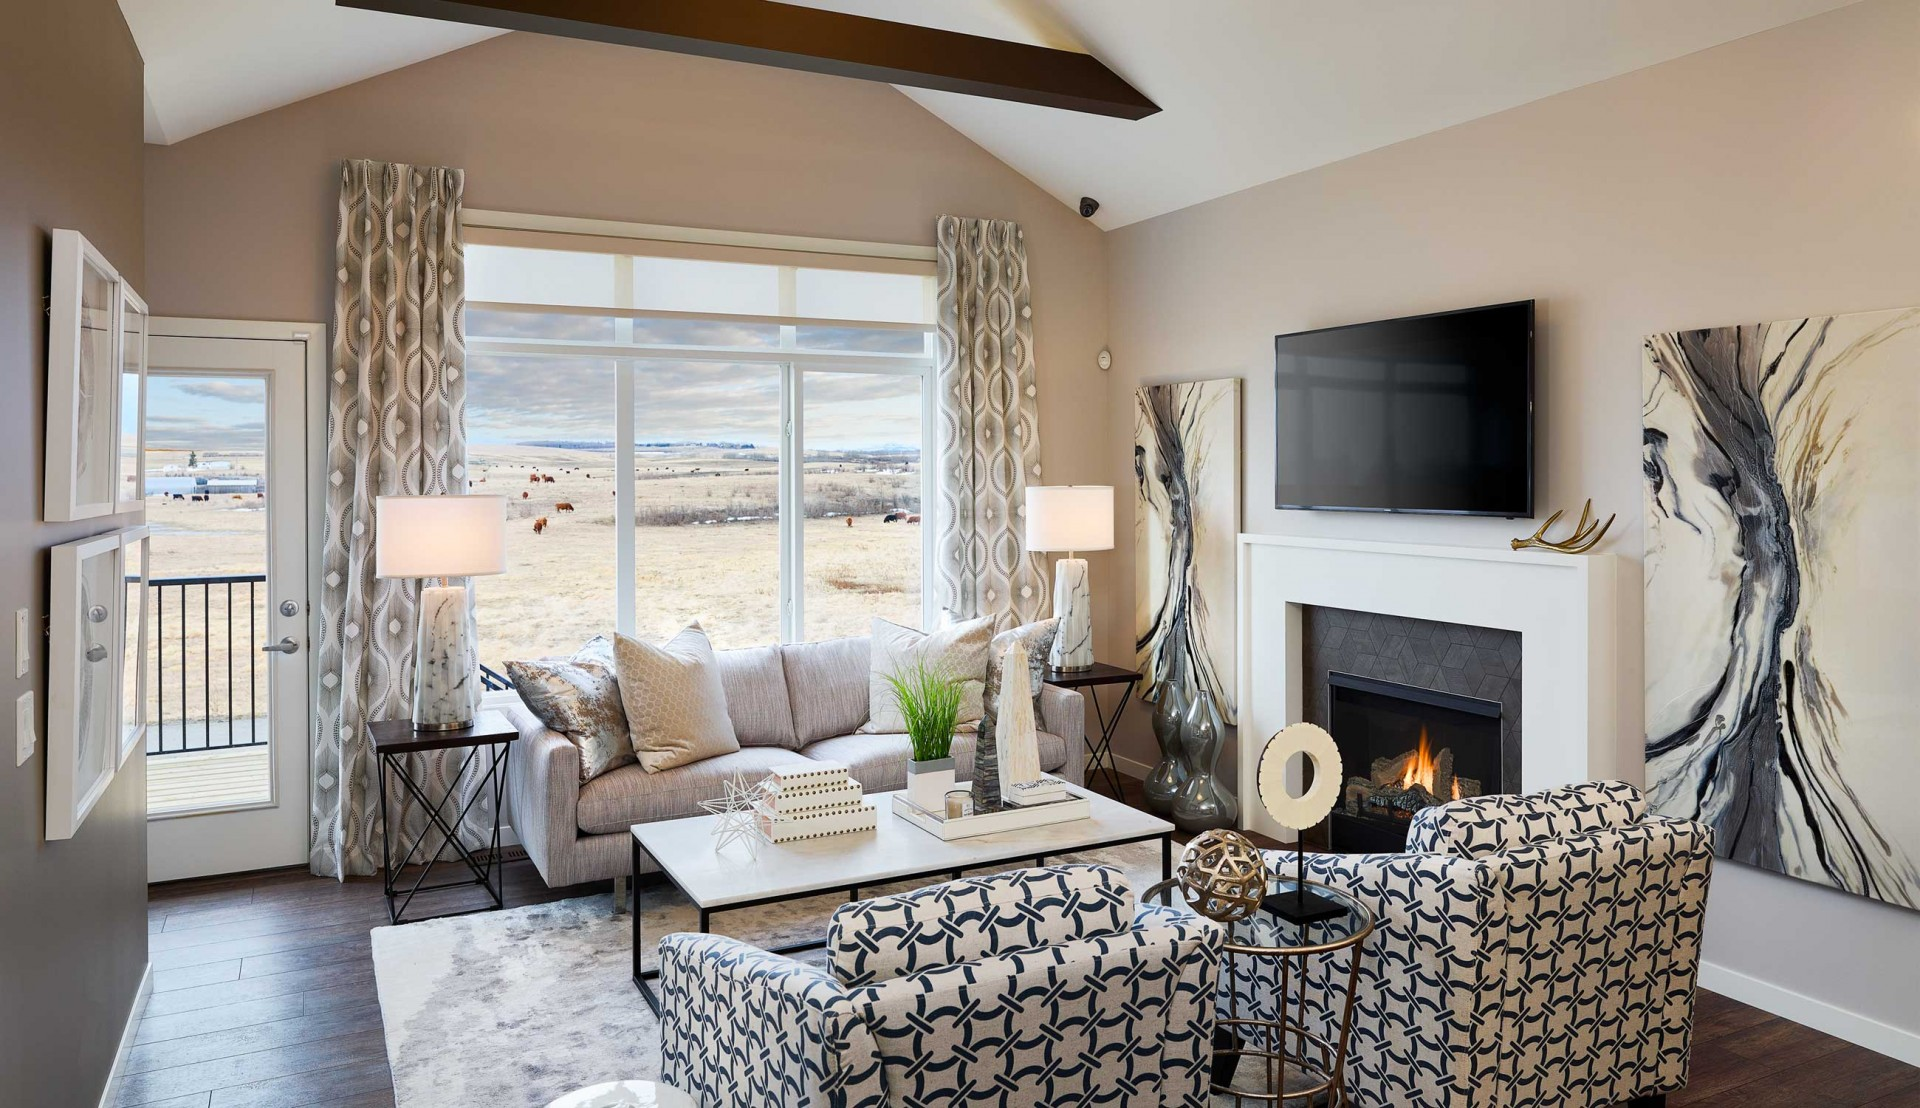 The Savannah, by Calbridge Homes